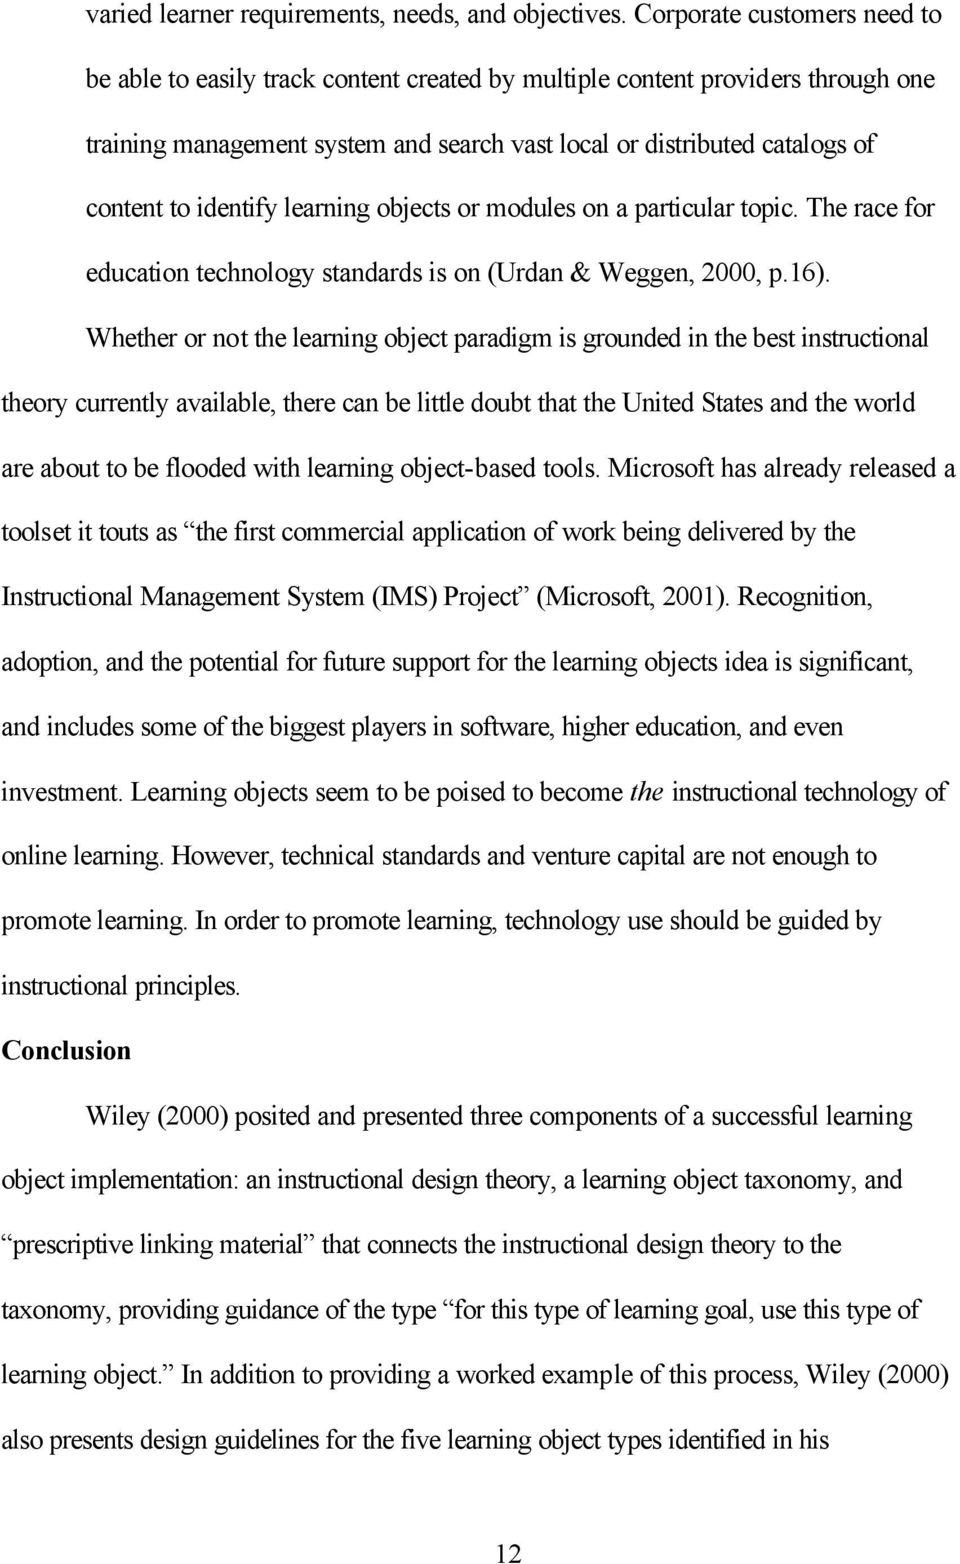 identify learning objects or modules on a particular topic. The race for education technology standards is on (Urdan & Weggen, 2000, p.16).